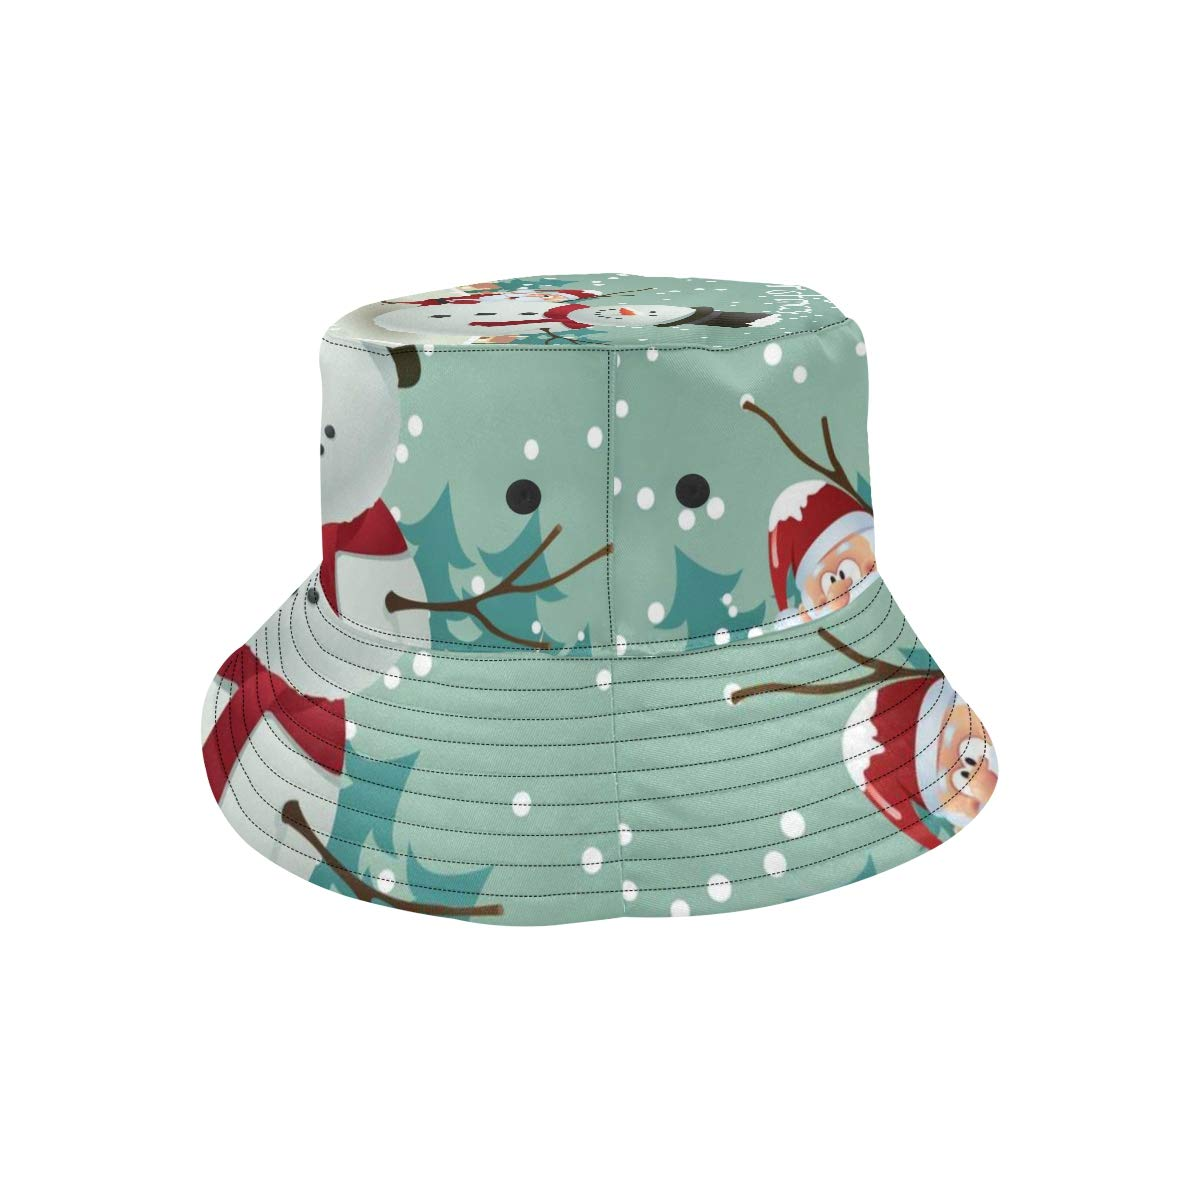 Merry Christmas White Snowman New Summer Unisex Cotton Fashion Fishing Sun Bucket Hats for Kid Teens Women and Men with Customize Top Packable Fisherman Cap for Outdoor Travel